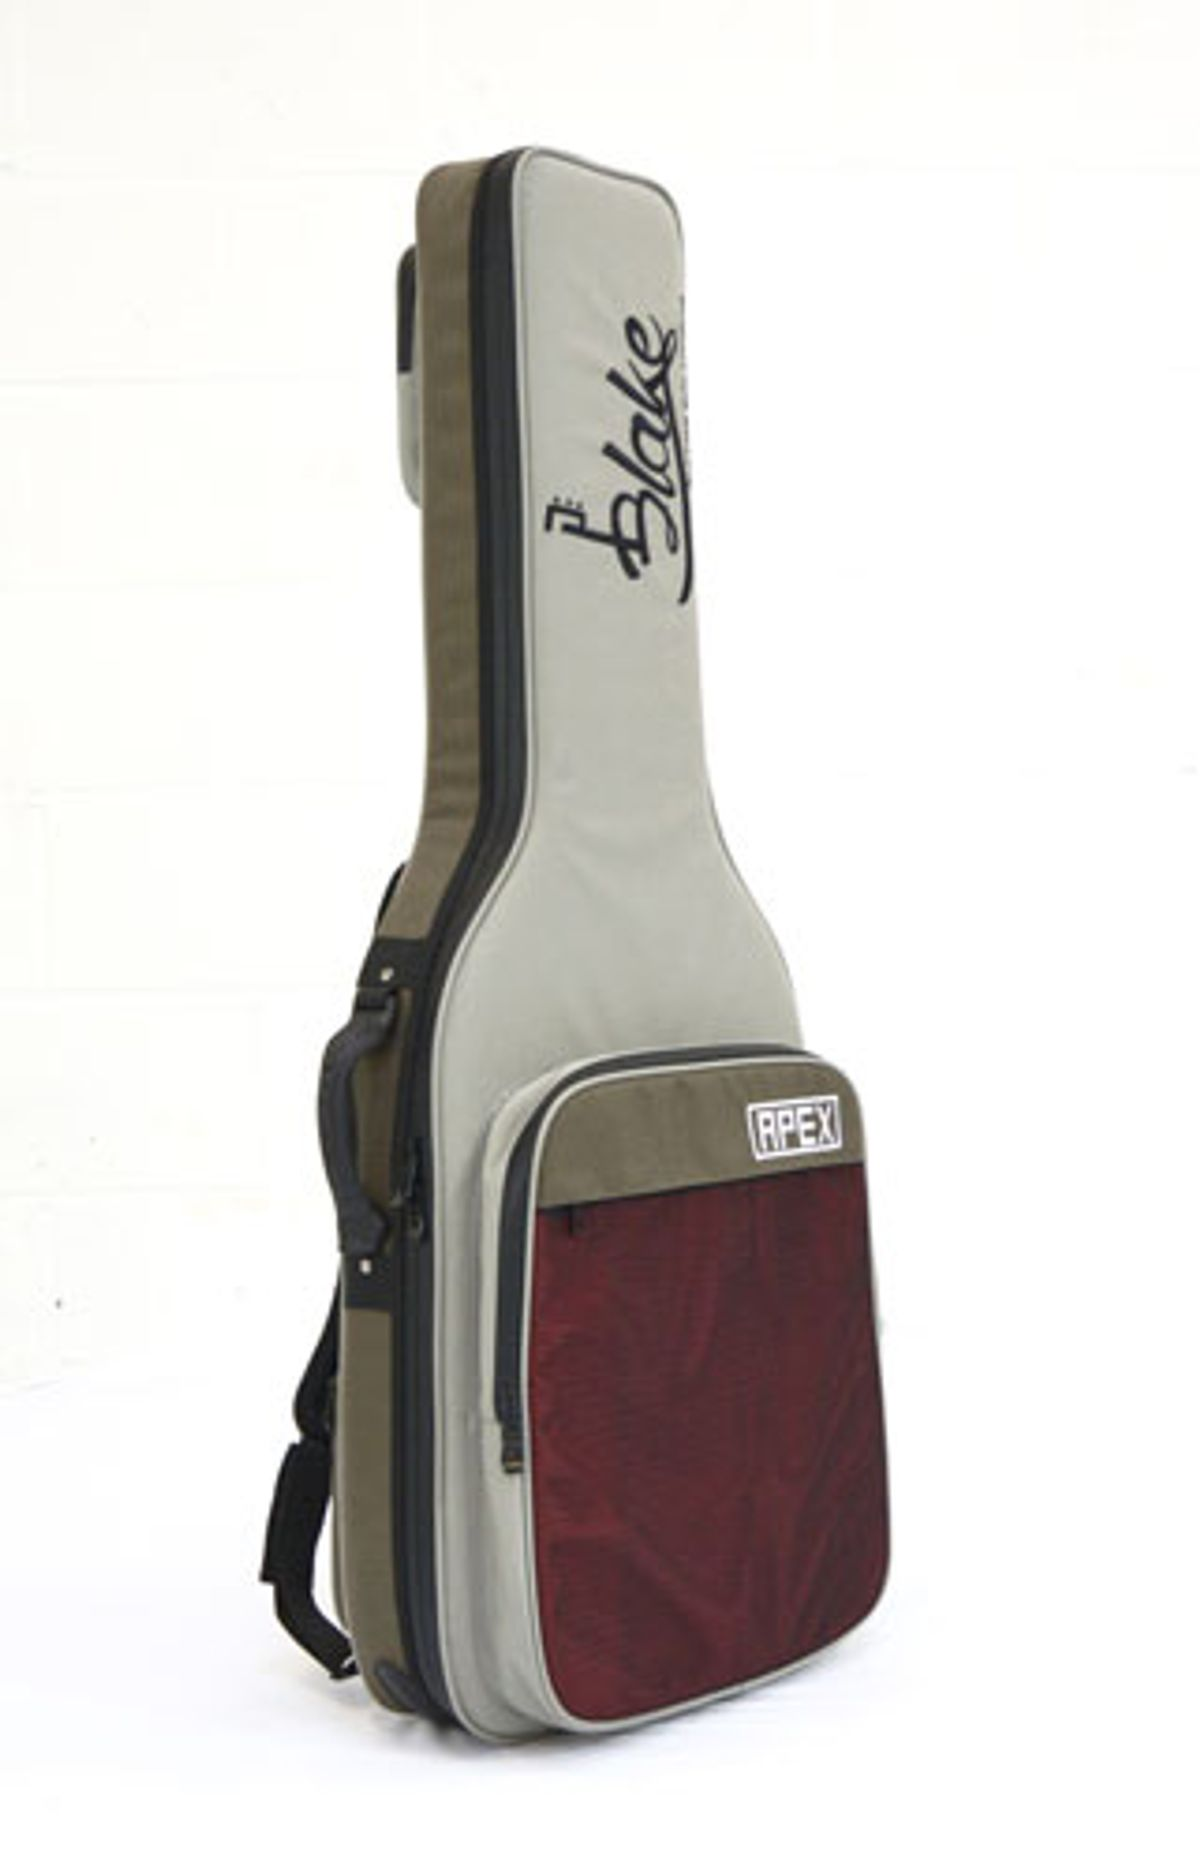 Blake Guitar Solutions Releases the Apex Guitar Case